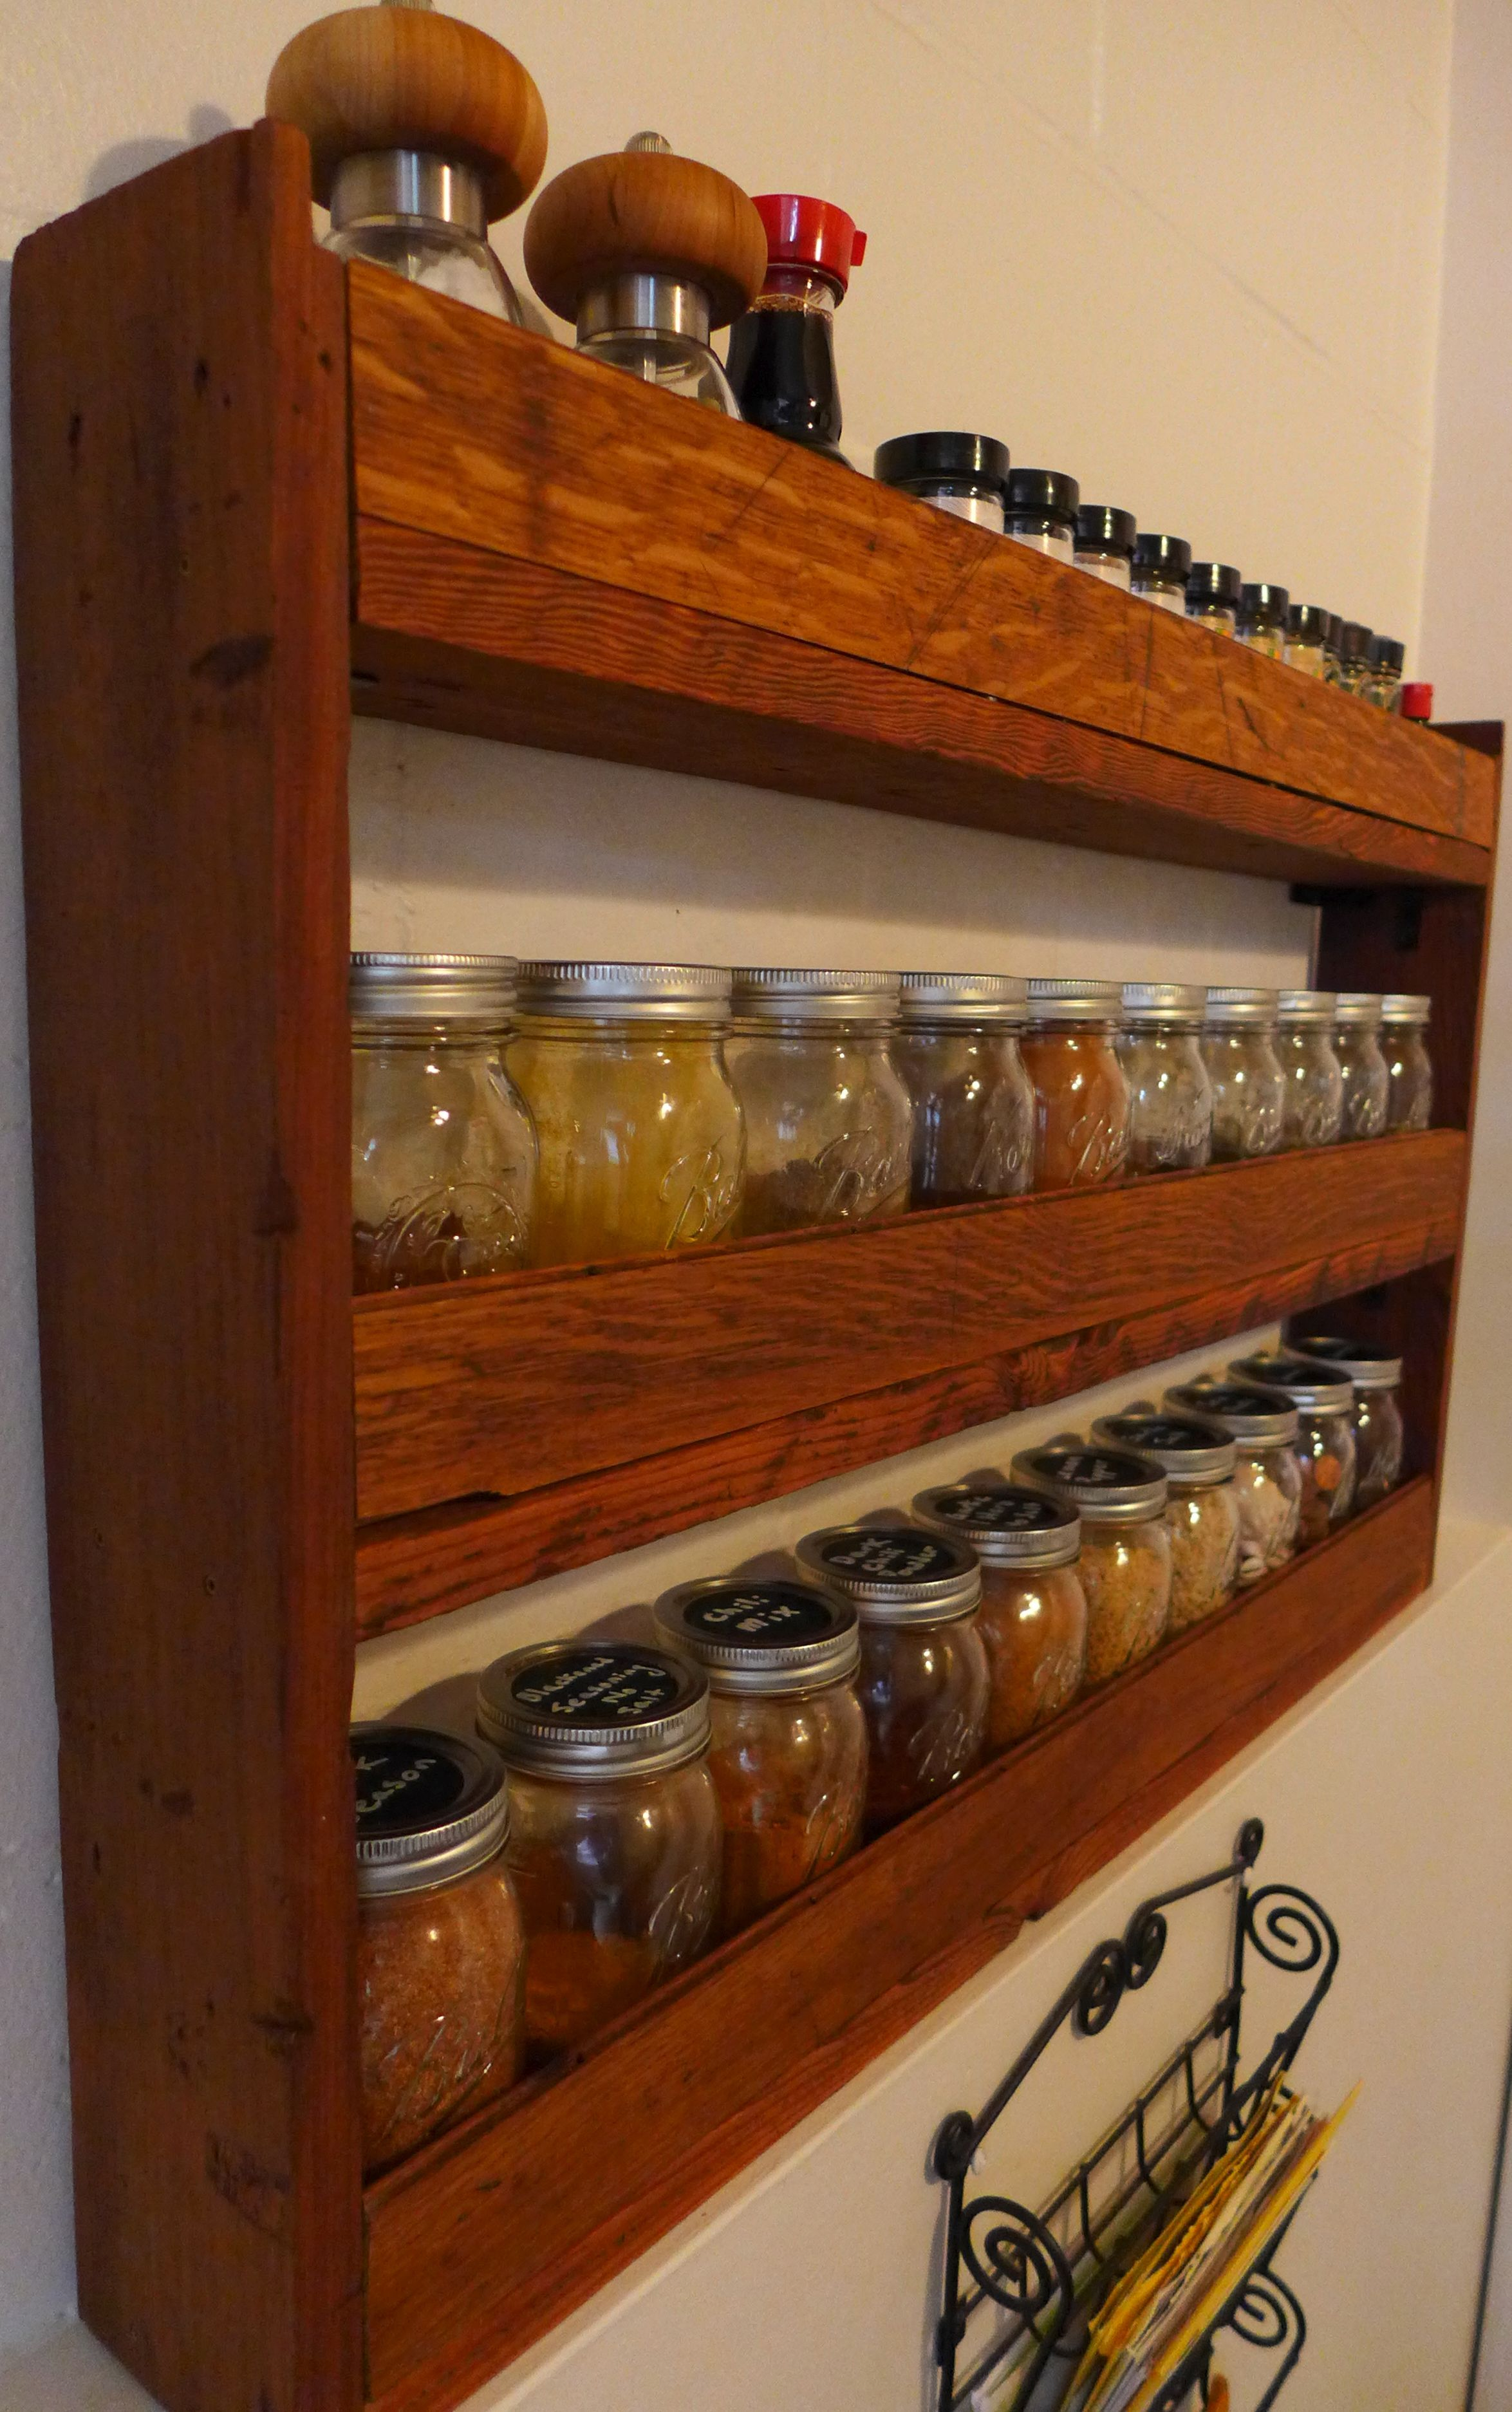 Diy Spice Rack For Pint Mason Jars Made From Reclaimed